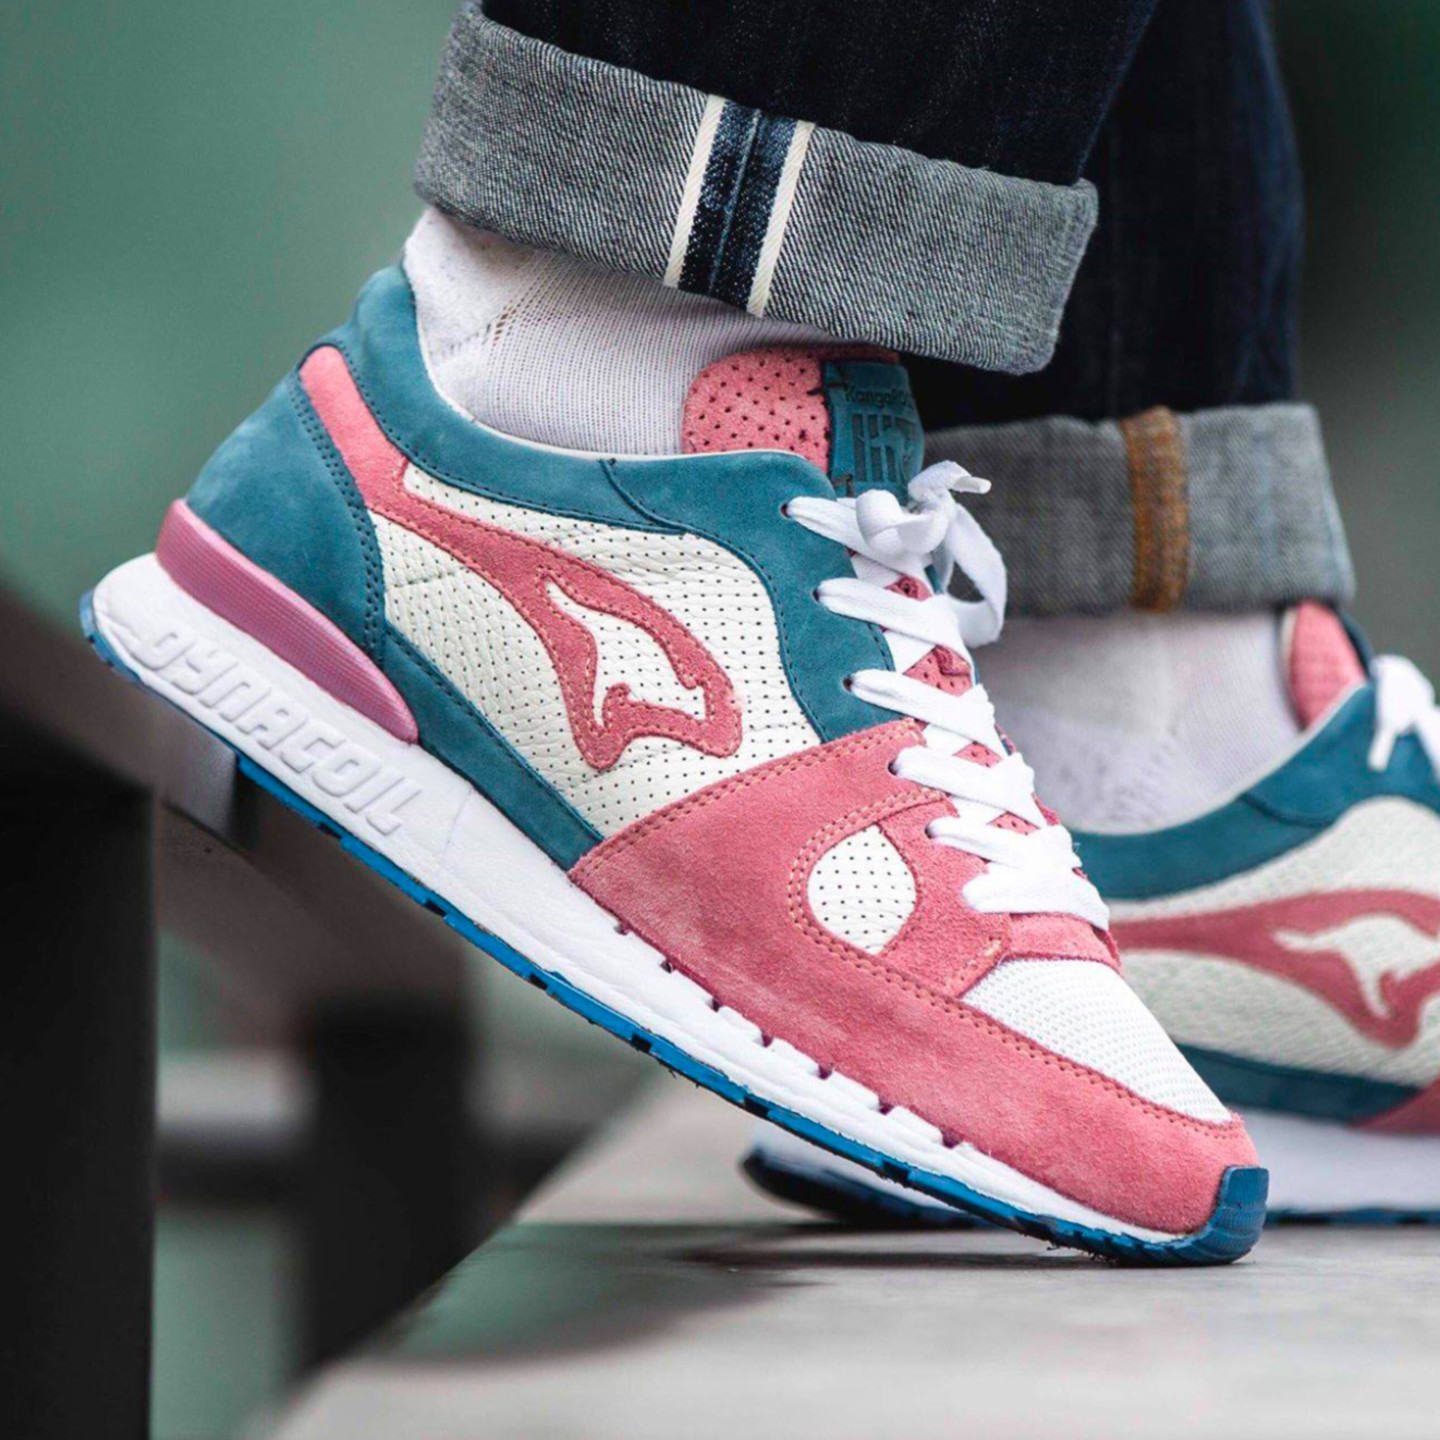 KangaROOS Sneakerholics 'Bubblegum' - Made in Germany White / Rose 4702S 000 0030